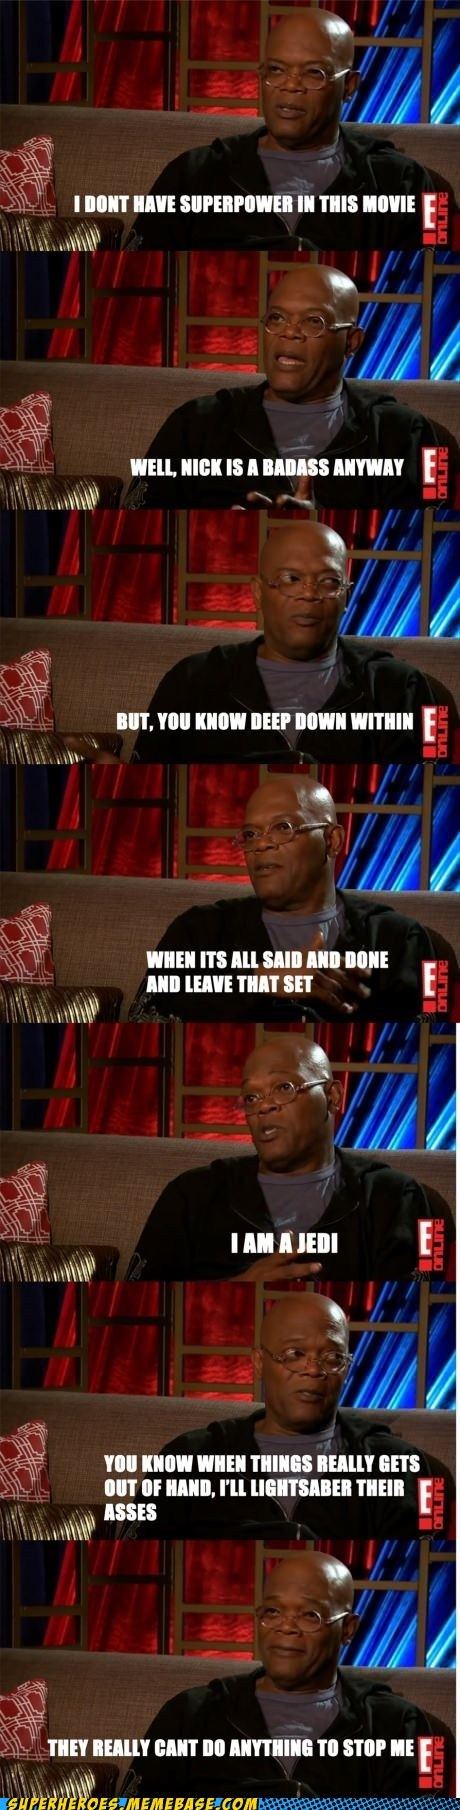 Nick Fury movies Samuel L Jackson interview - 6855361280